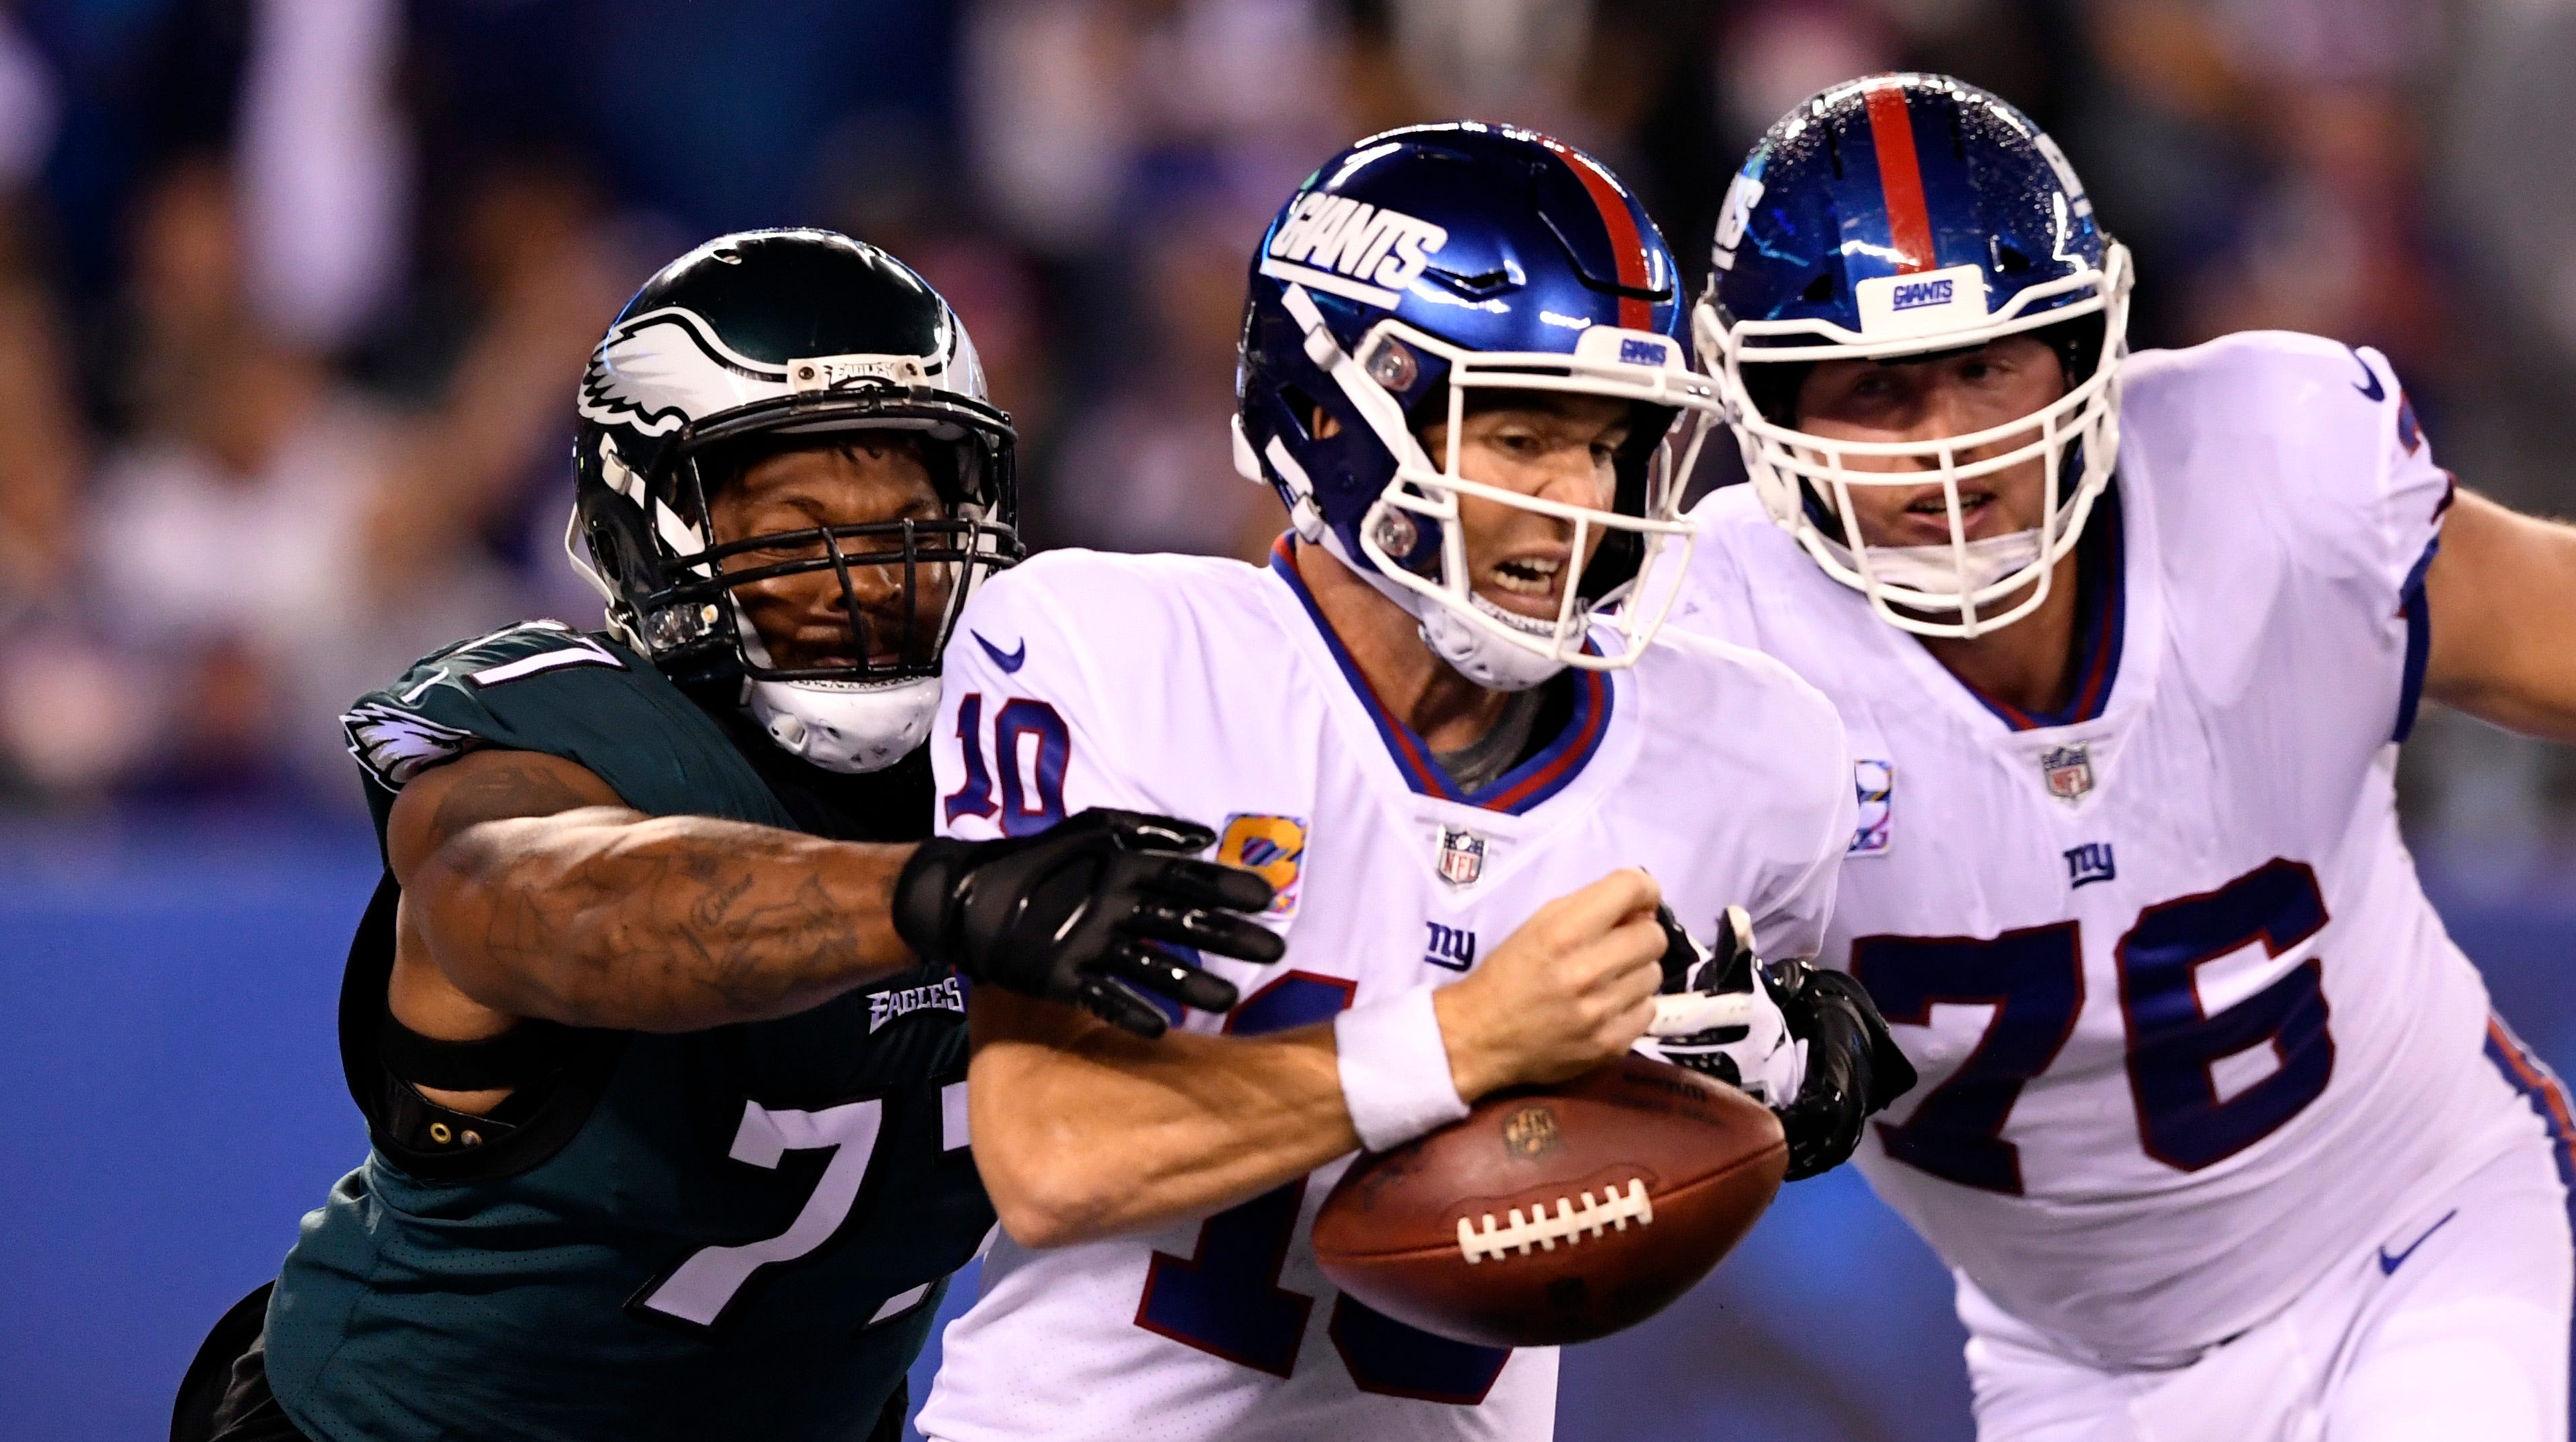 If it's not decisions by Eli Manning, it's the play calling. The Giants did what they could to give a game they desperately needed to the Eagles.